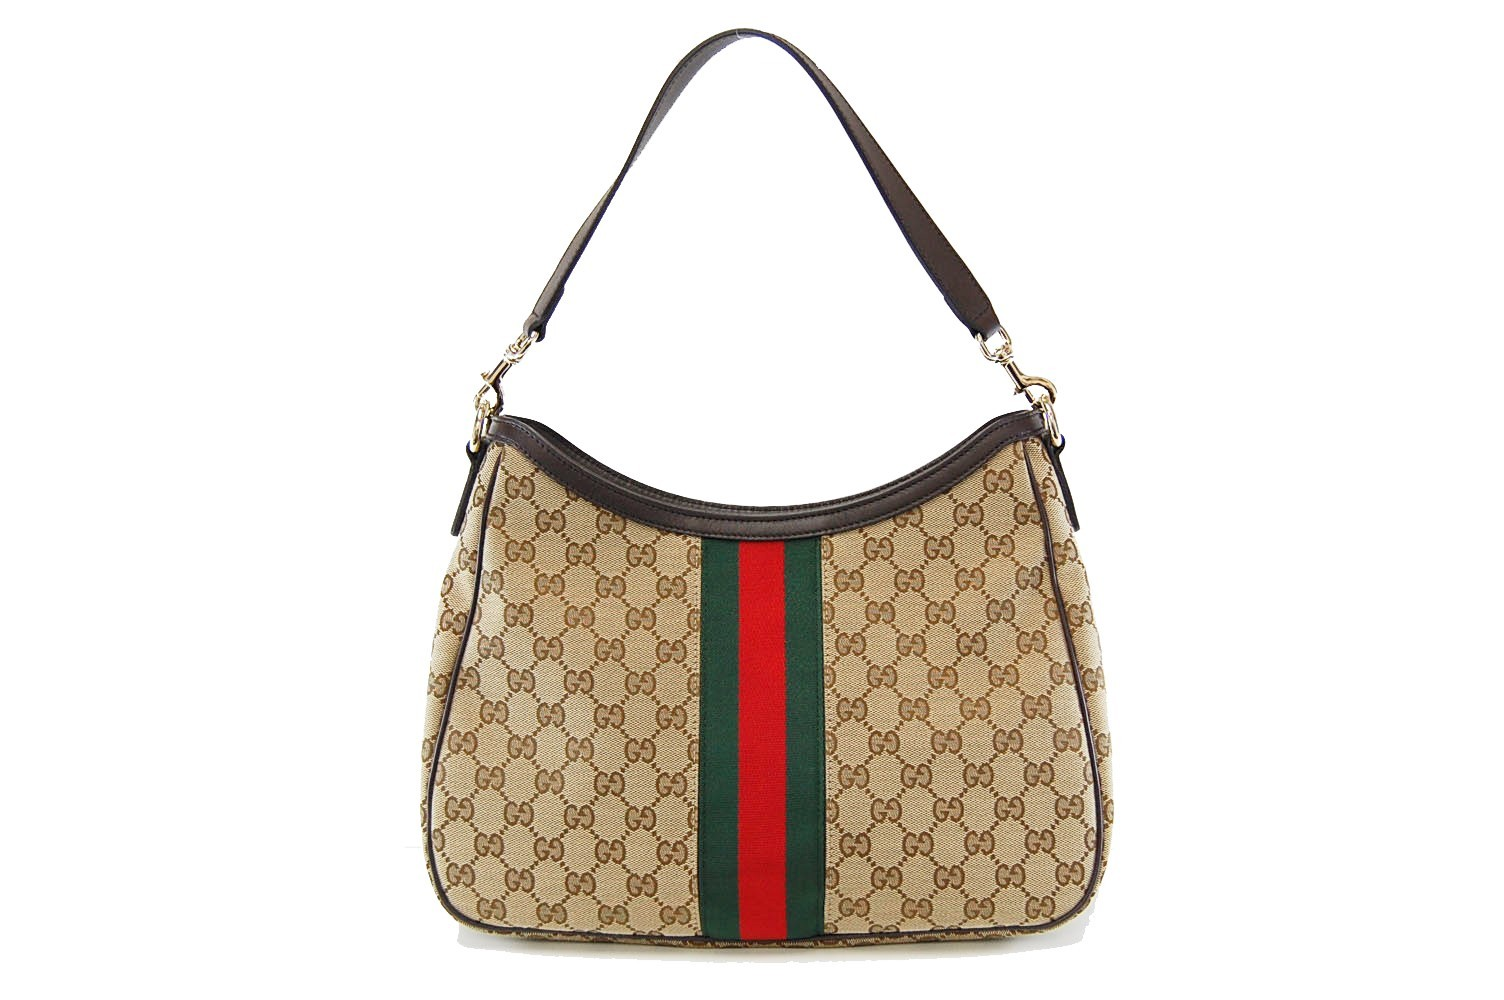 official photos e2d78 a5db5 美品】GUCCI グッチ GG柄 ショルダーバッグ 【中古】買取総合 ...